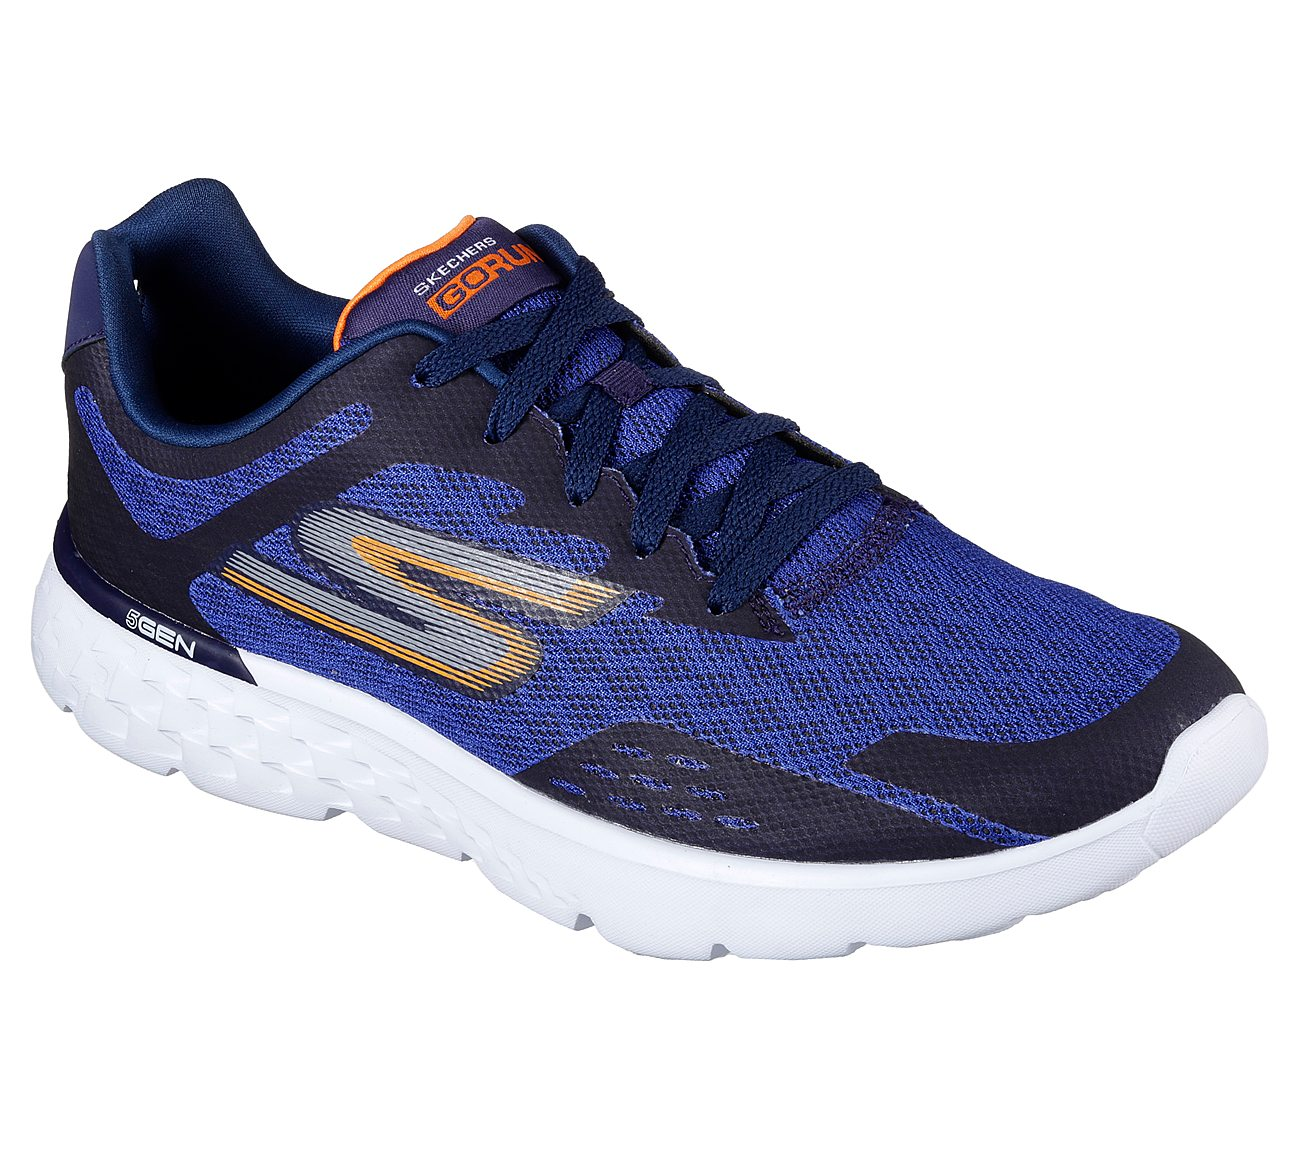 skechers running shoes. hover to zoom skechers running shoes